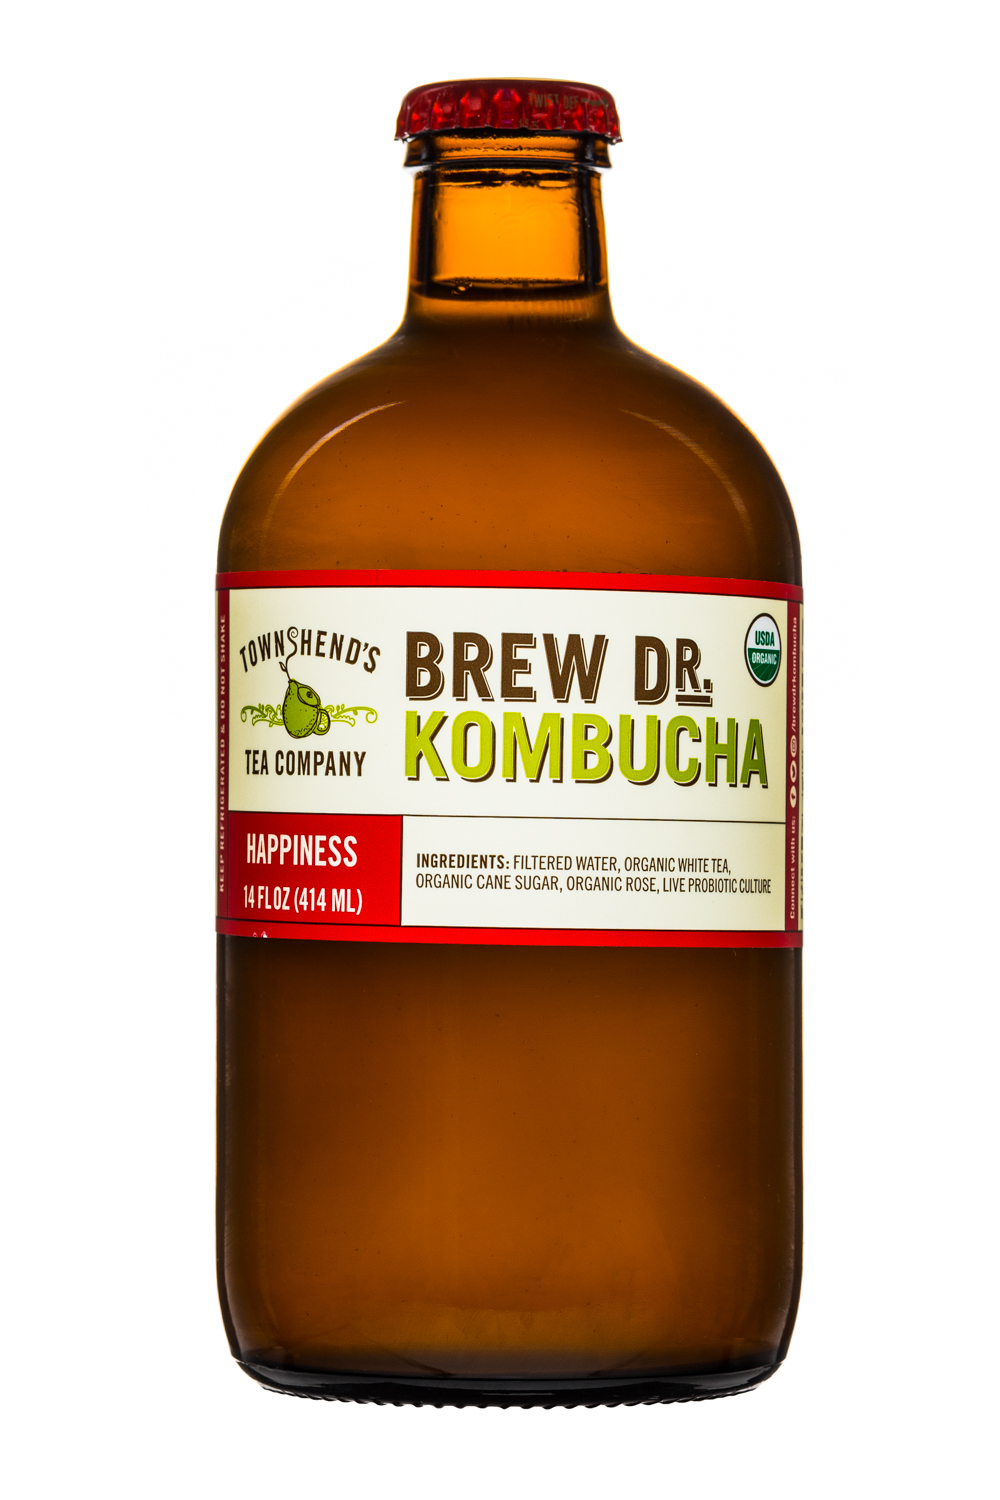 Brew Dr. Kombucha: Townhends-BrewDr-14oz-Happiness-Front